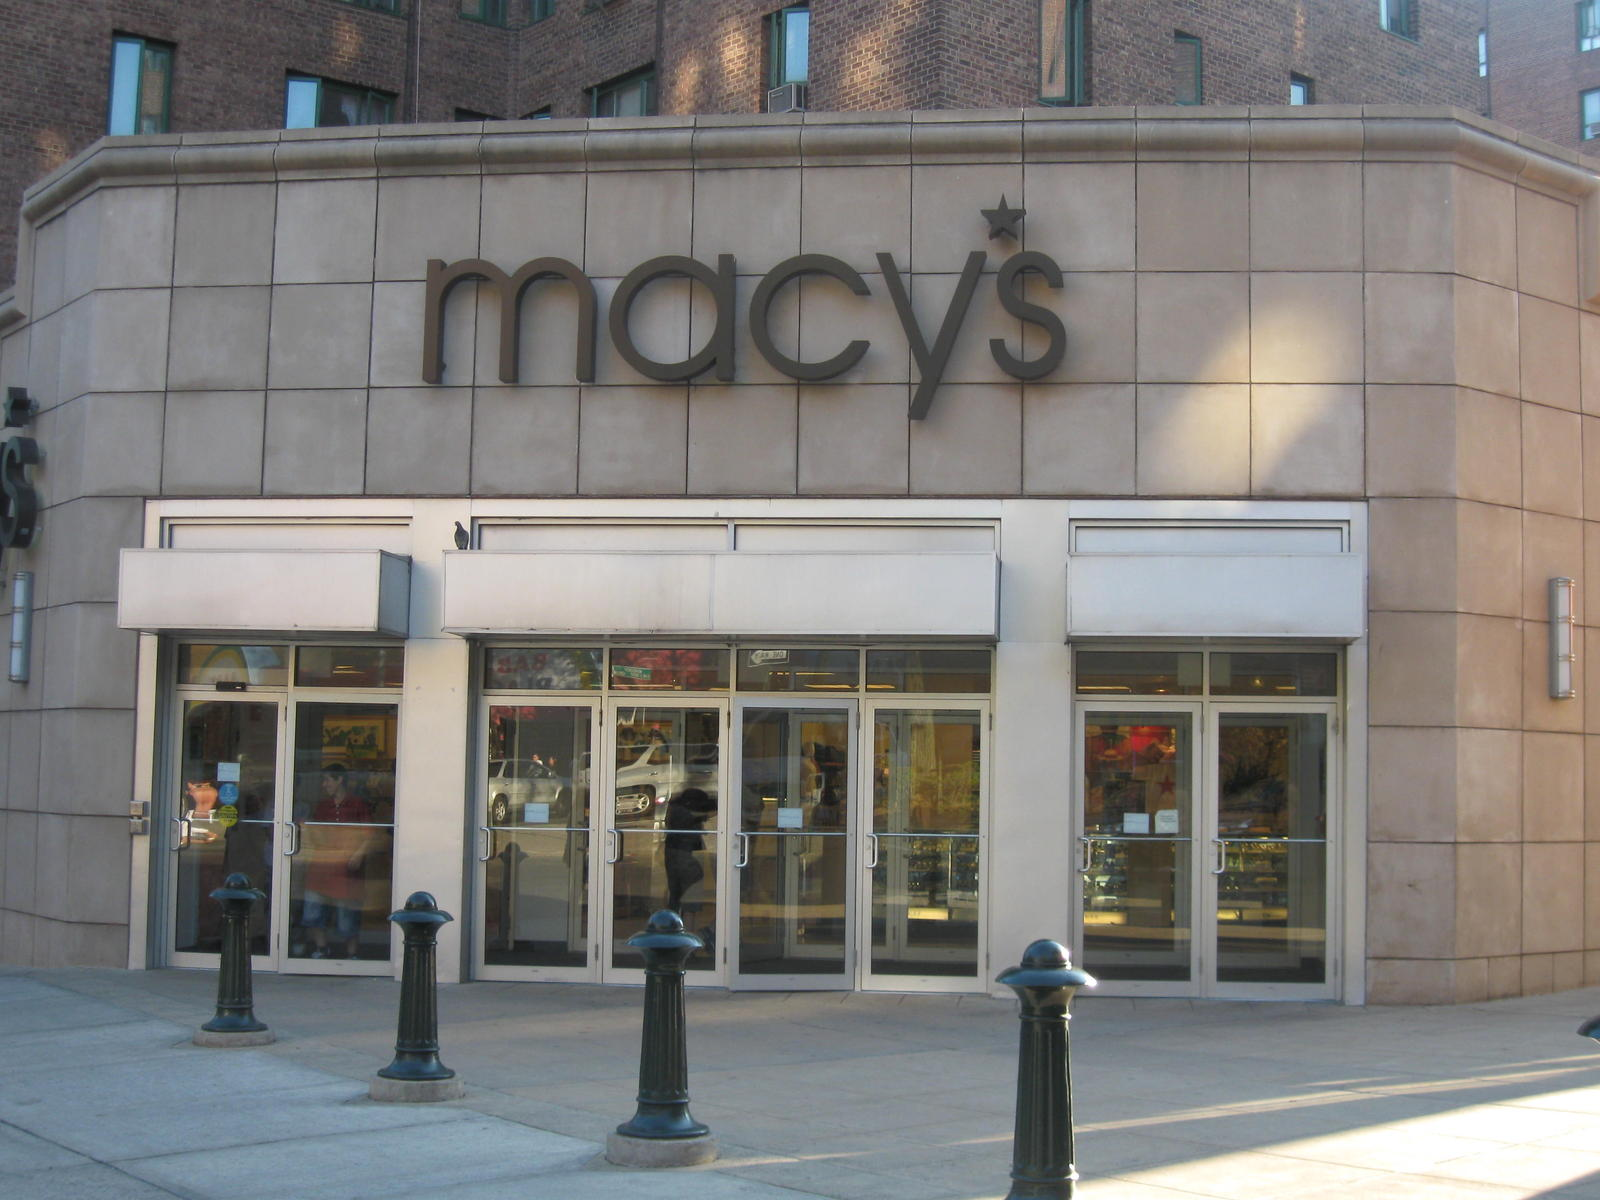 New York, U.S.A., Macys store entrance